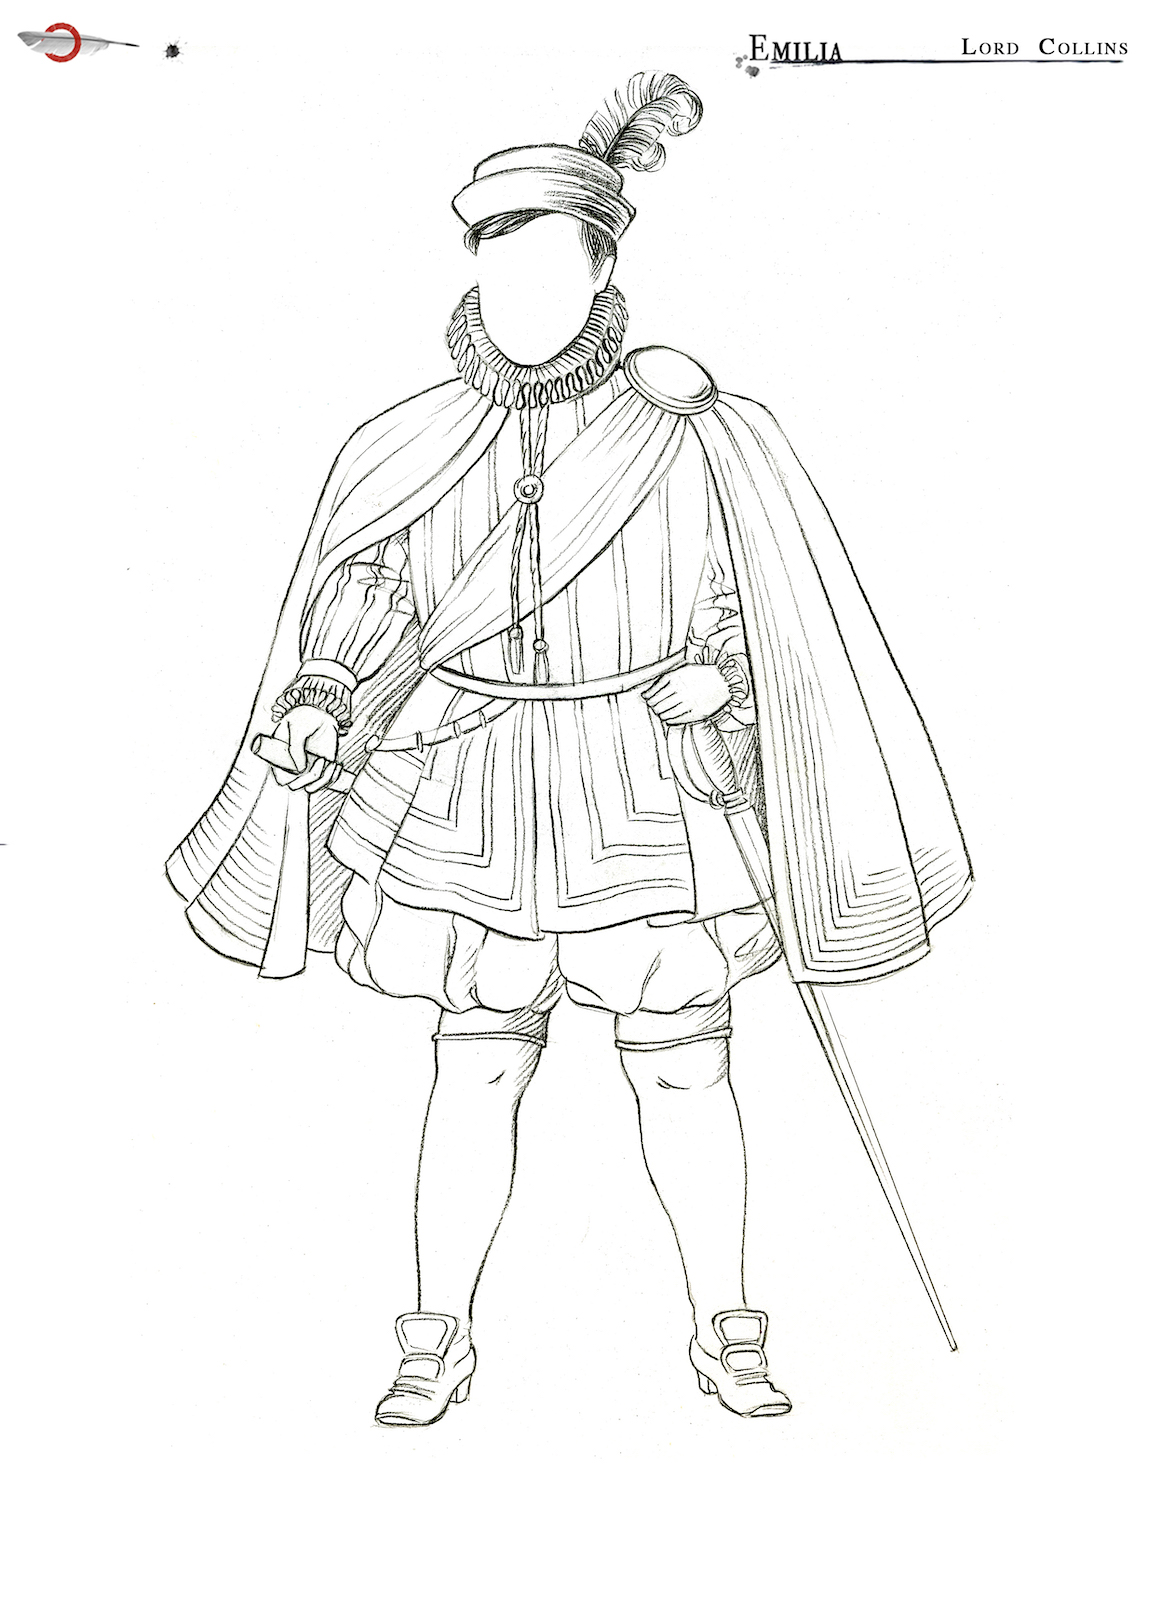 An outline of a costume sketch of a male Elizabethan costume